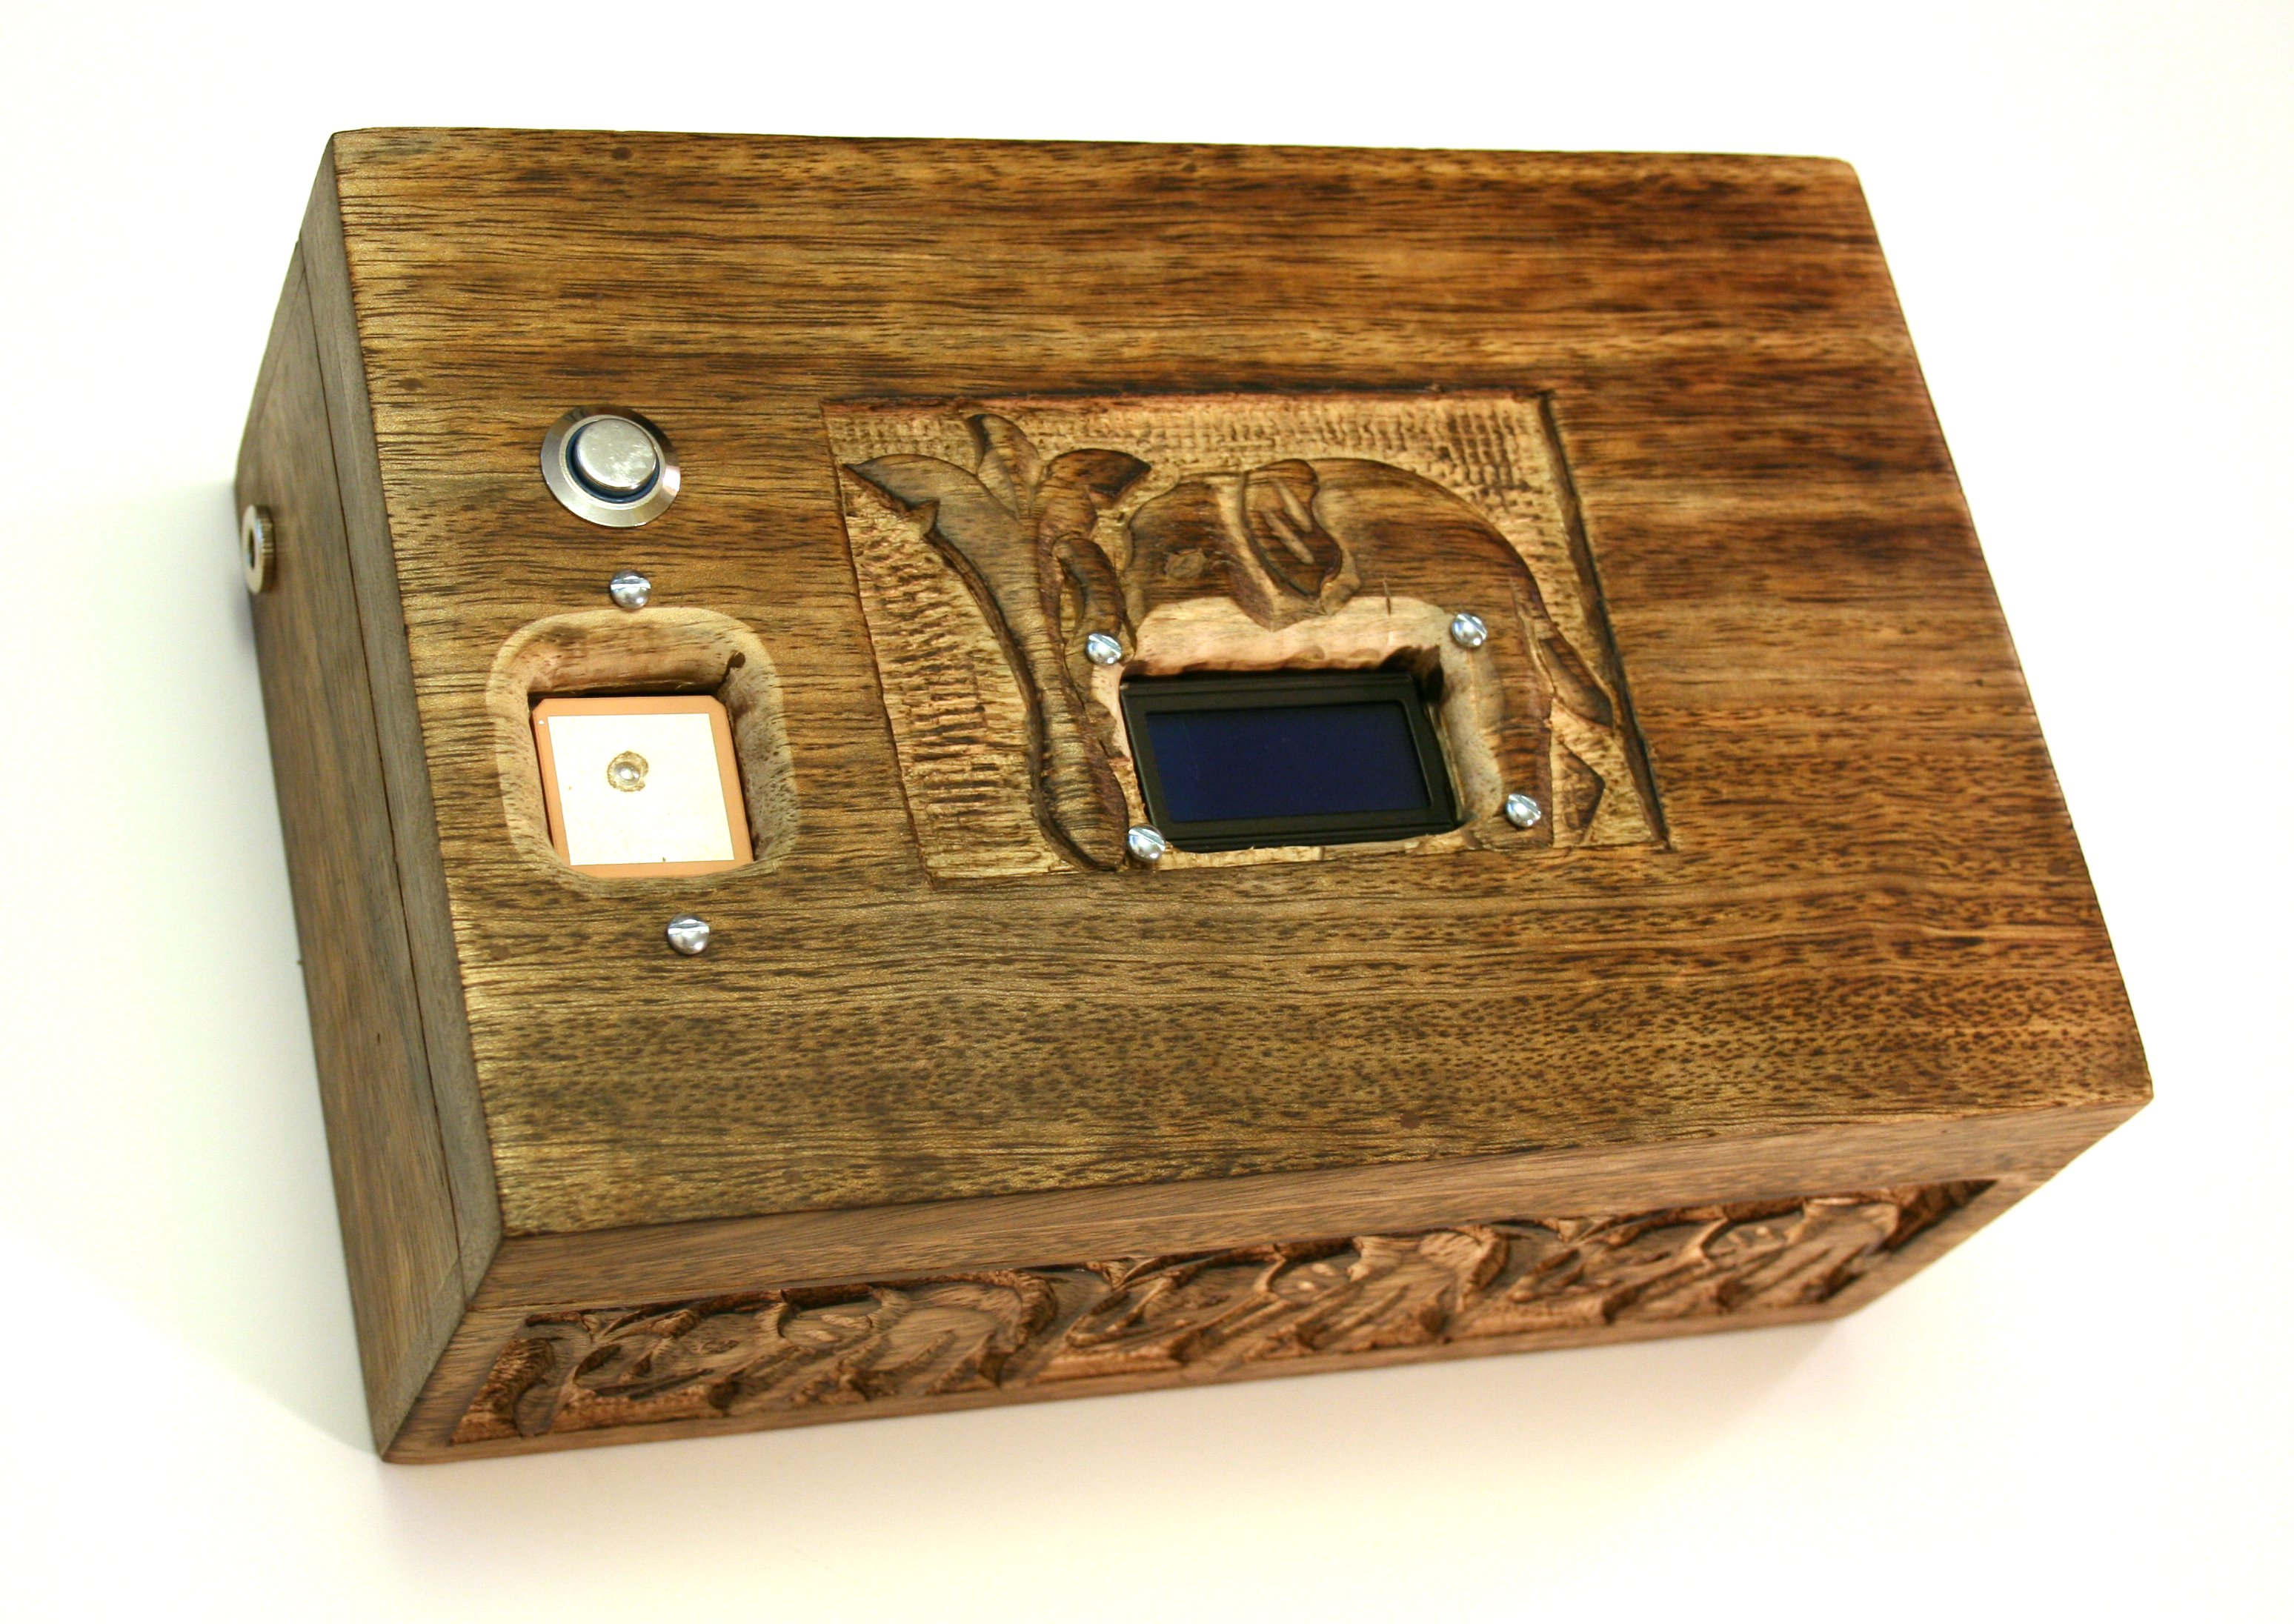 Diy Puzzle Box Kit